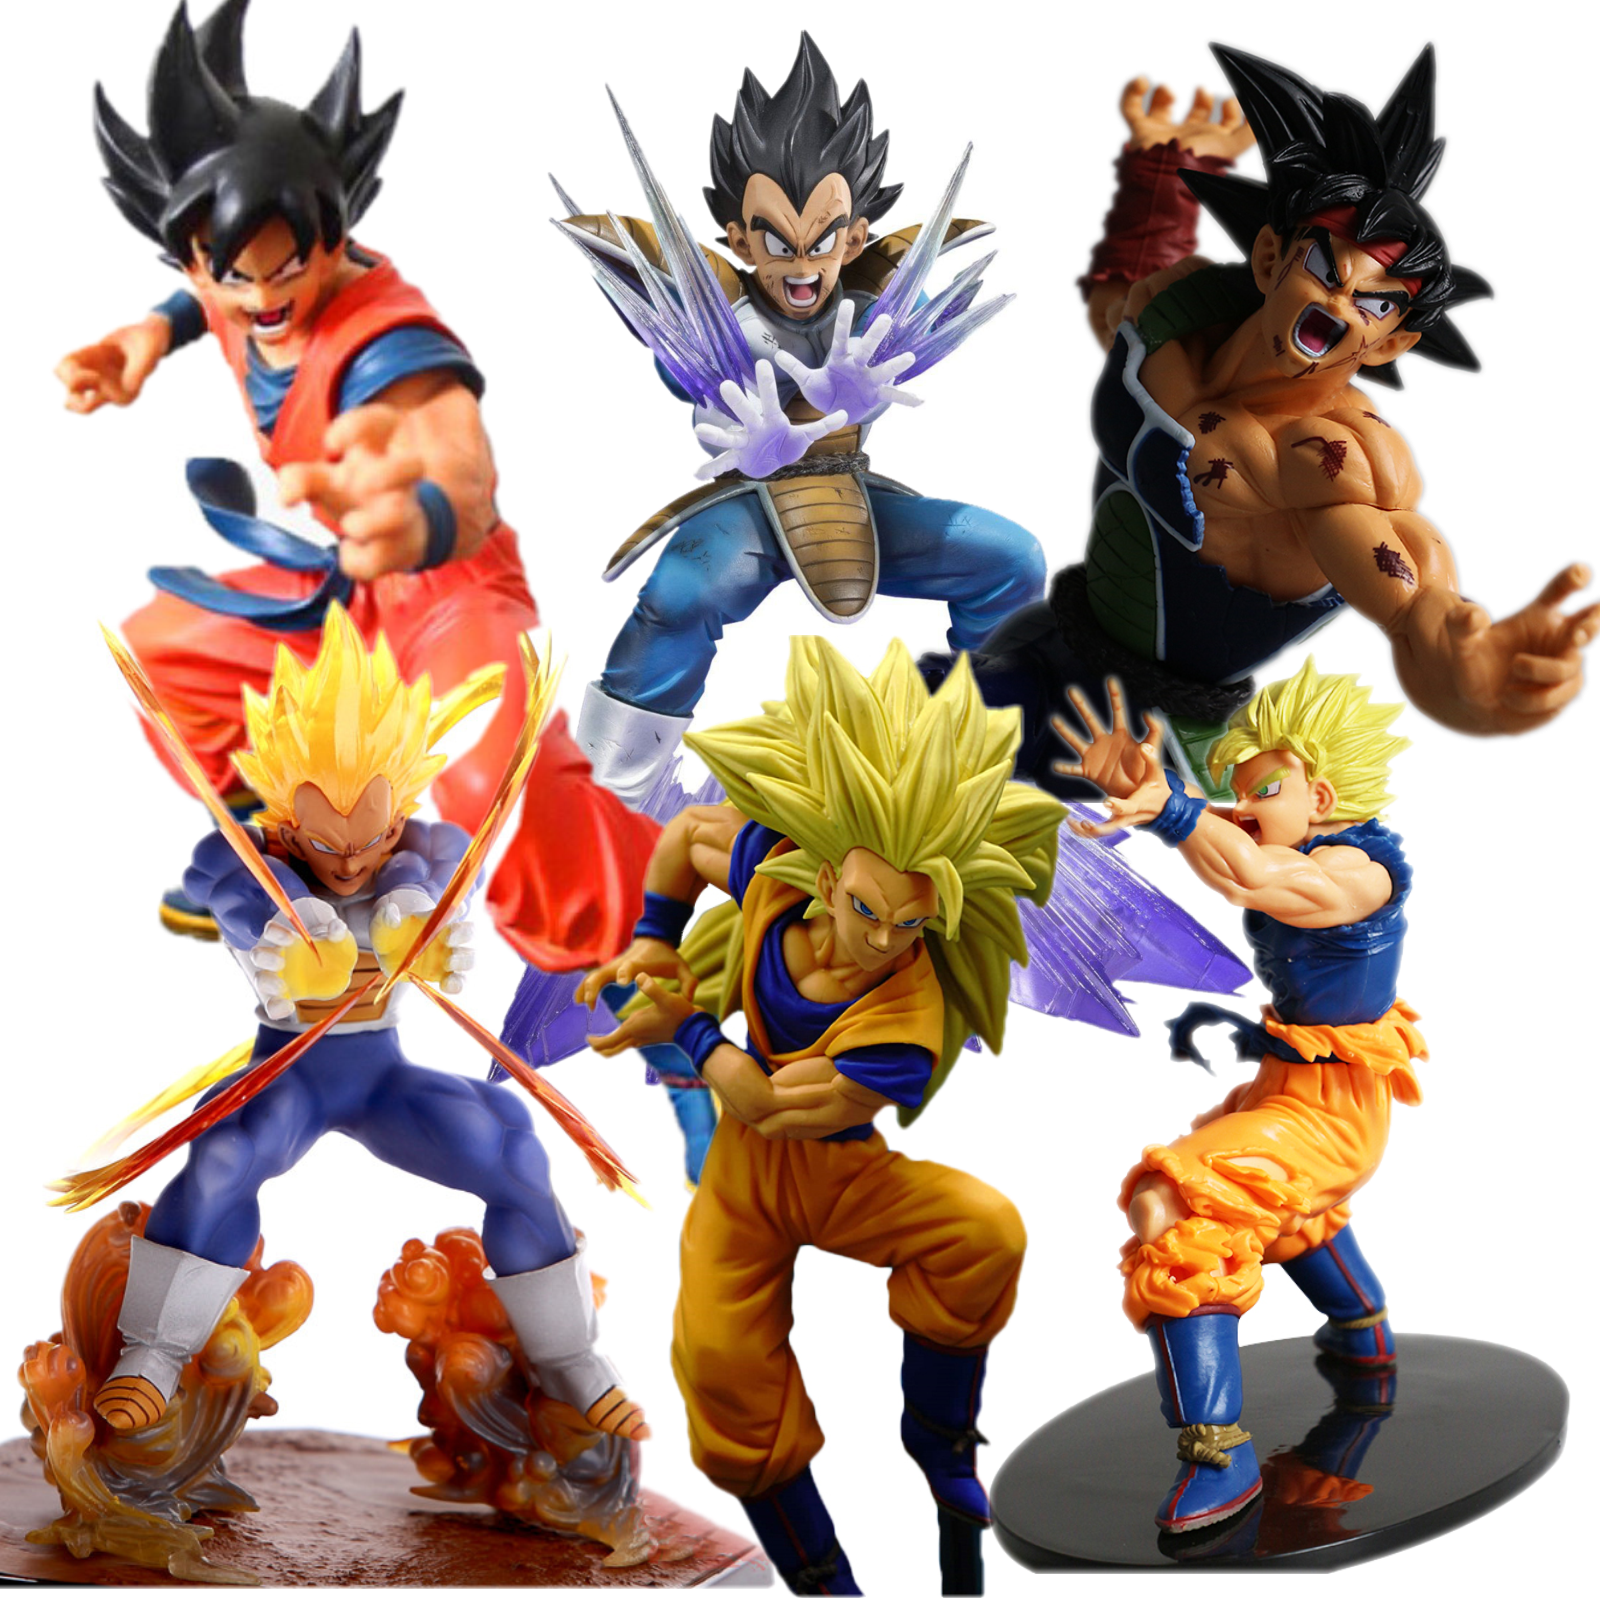 Dragon Ball Z Super Saiyan Trunks Figure S.H Figuarts Collection Toy Gift In Box